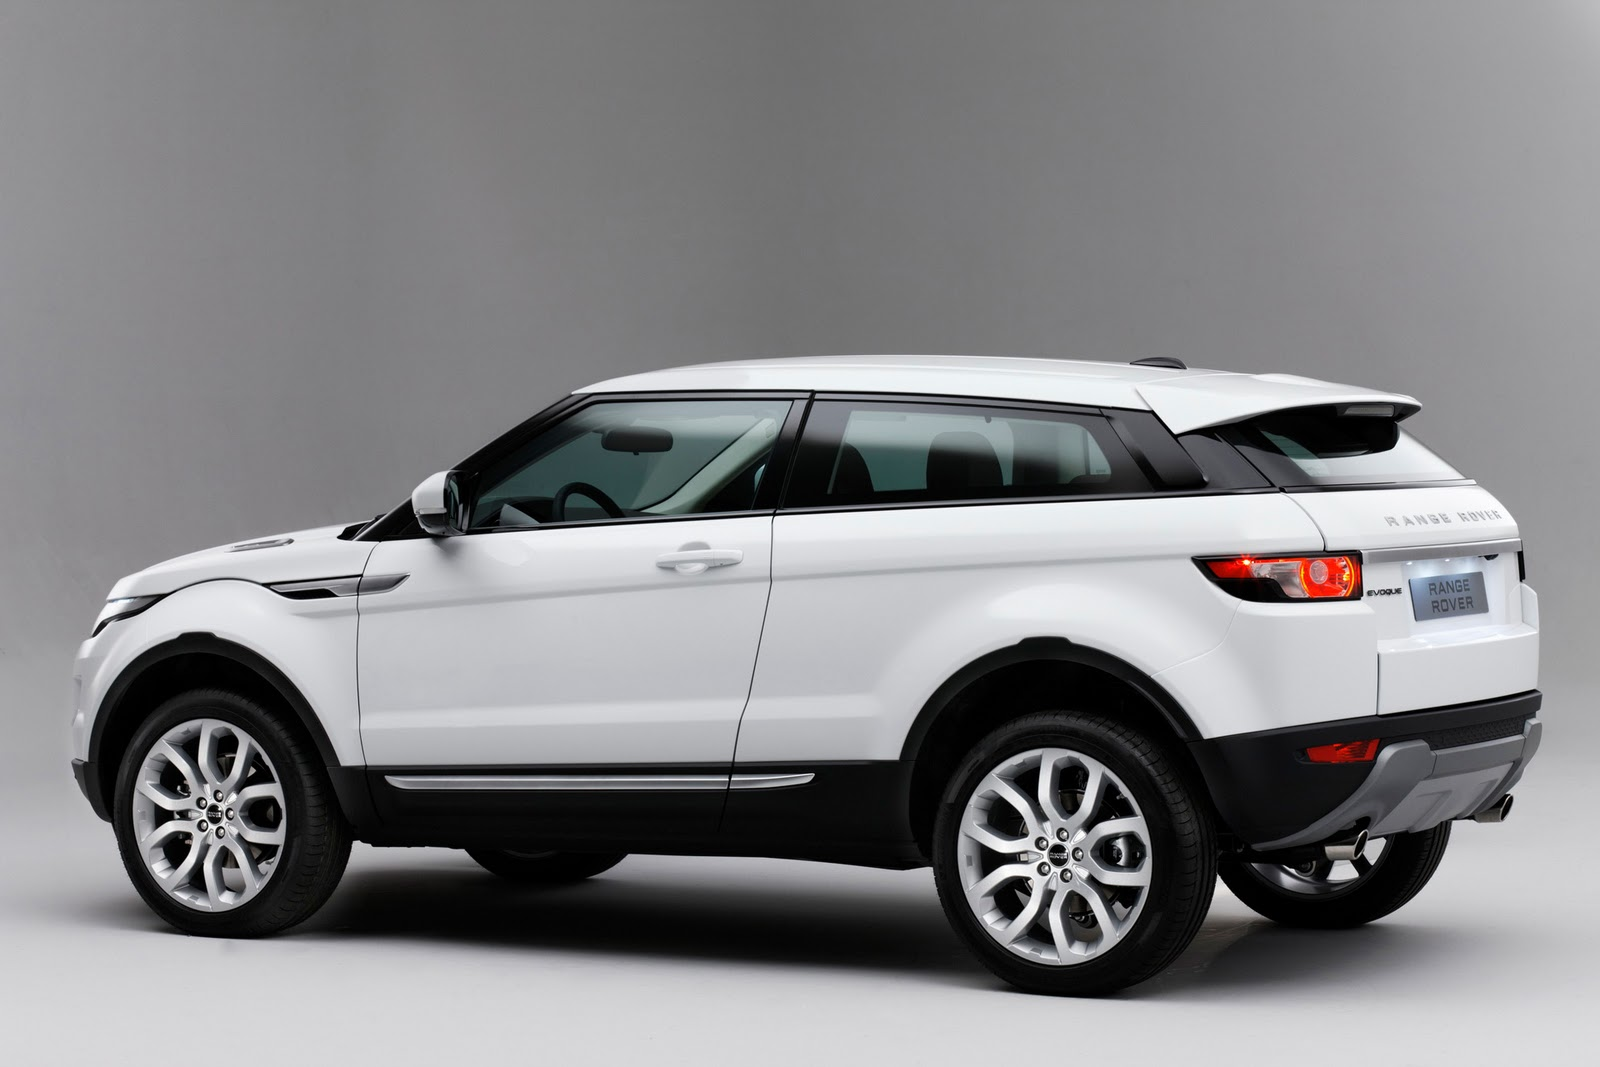 Cool Car Wallpapers: 2012 Land Rover Evoque